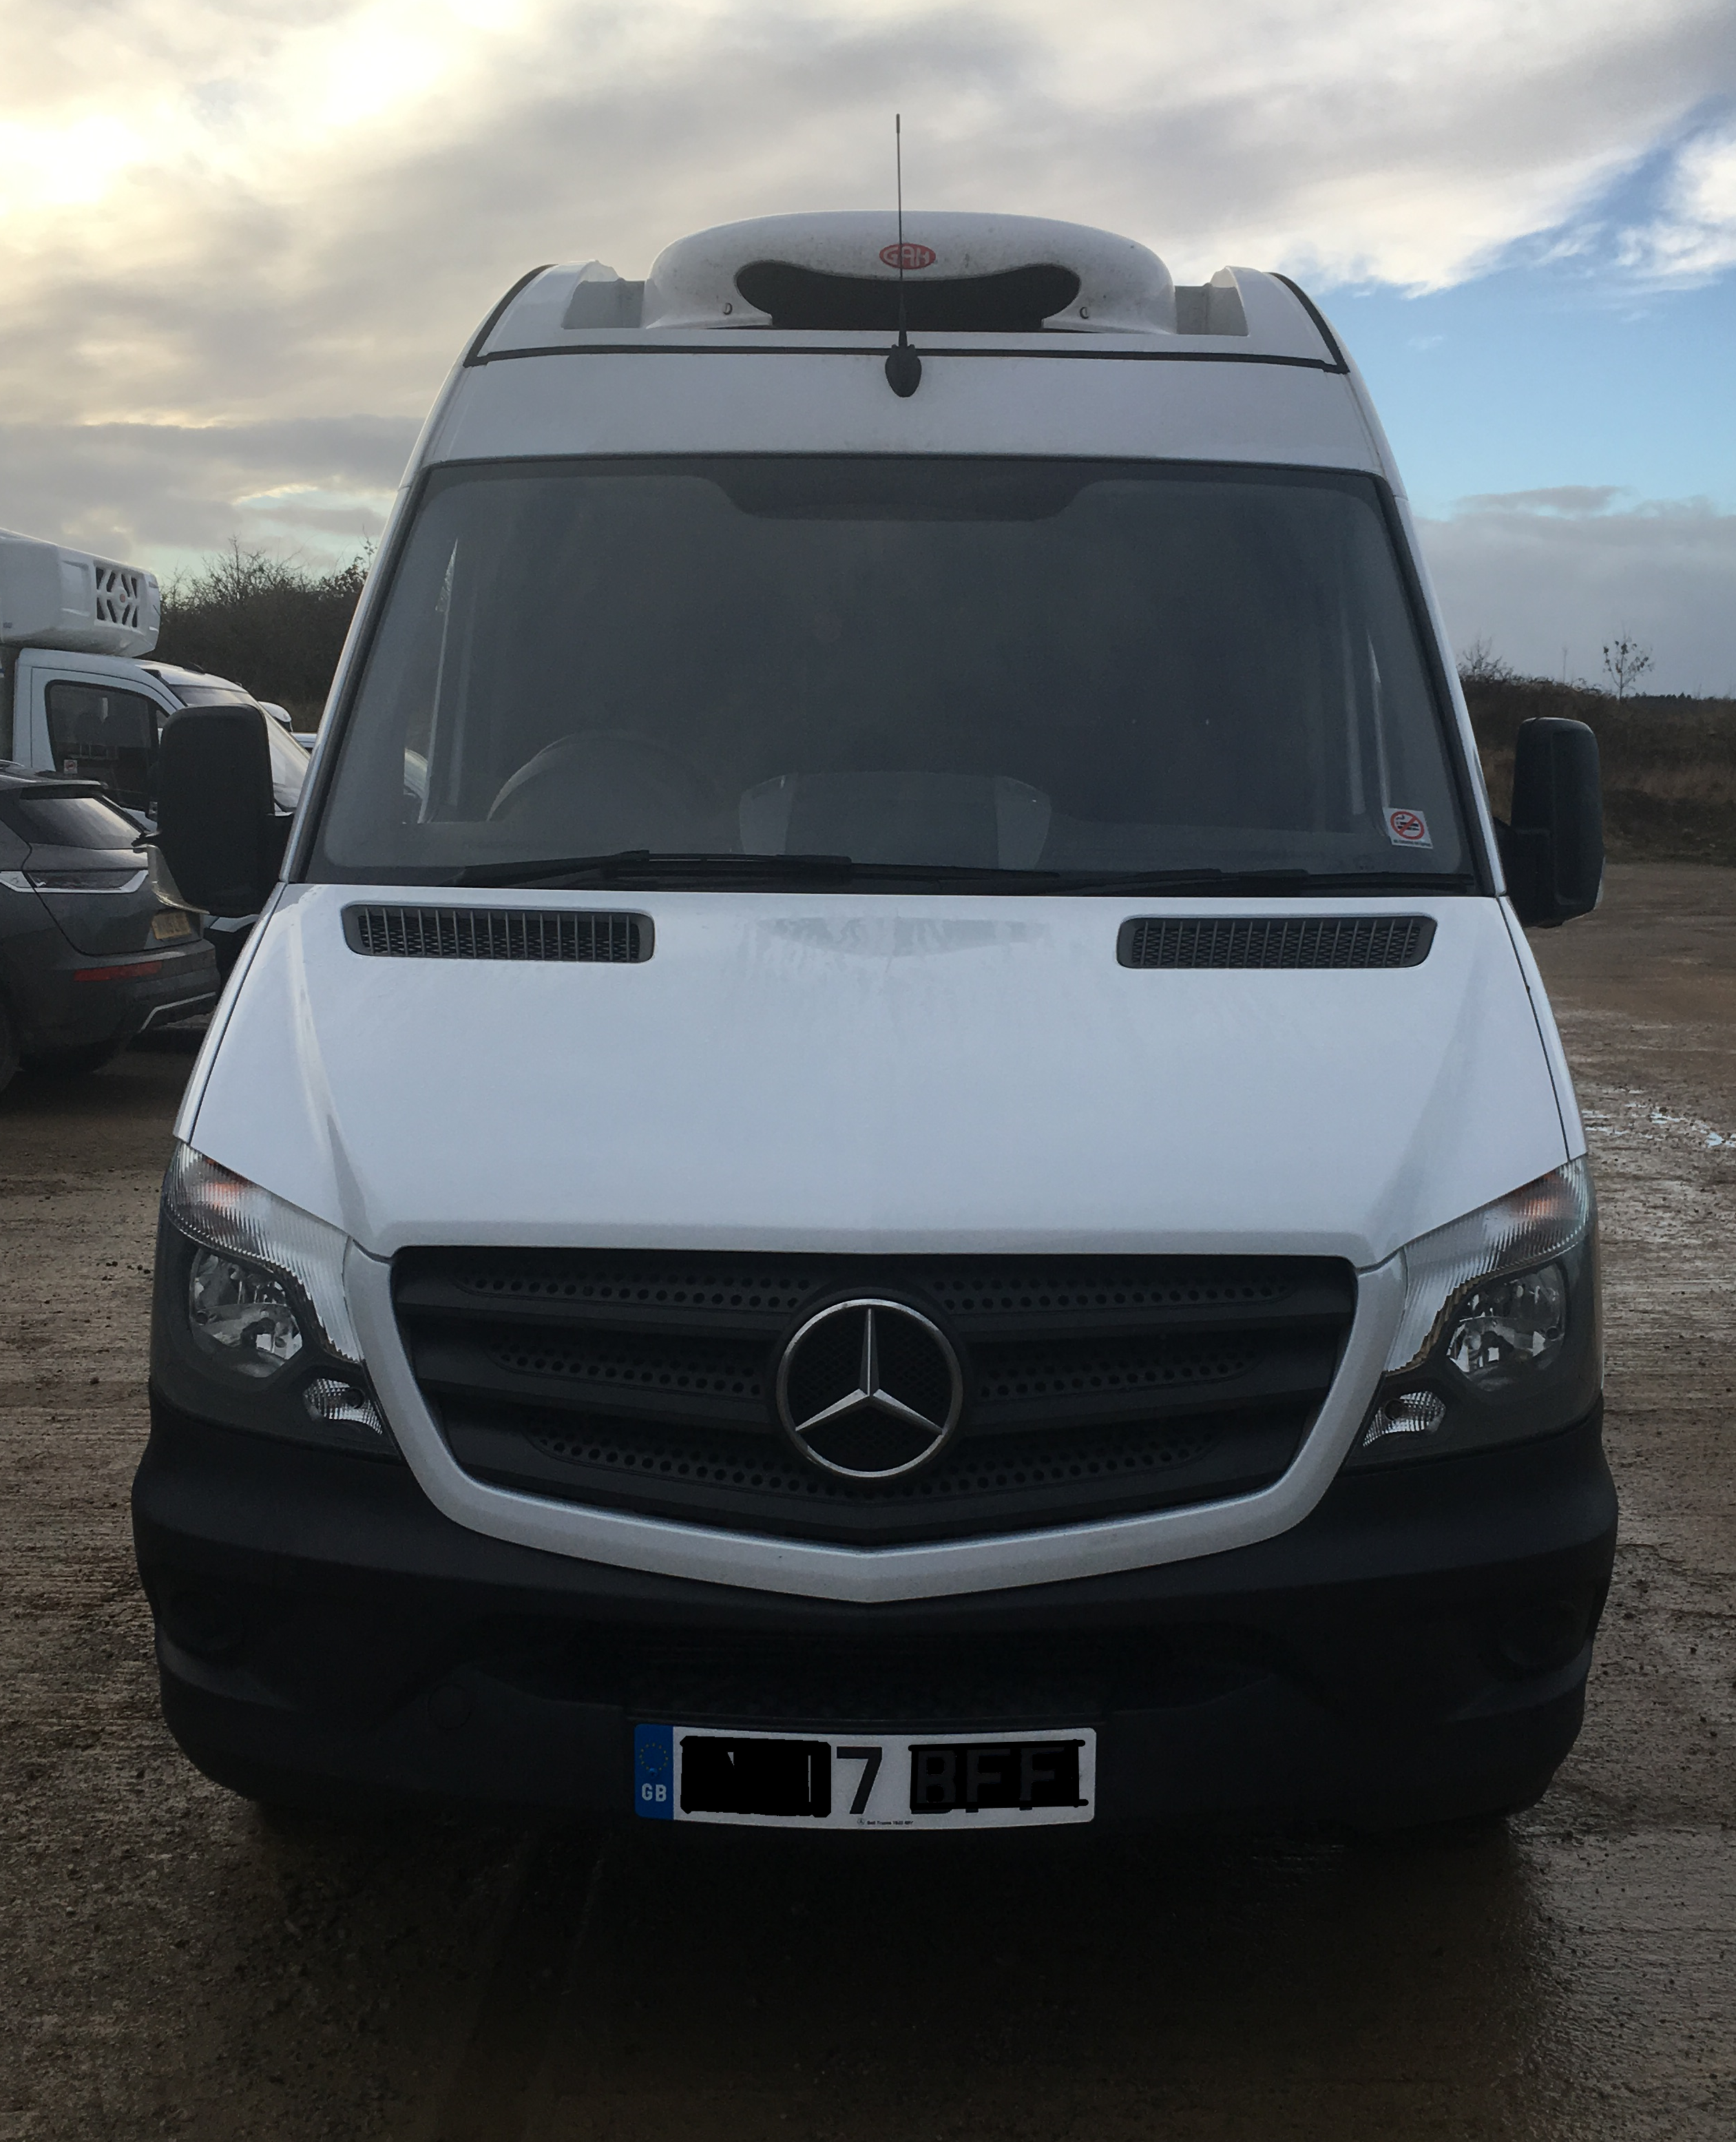 17 Plate Mercedes Sprinter Freezer